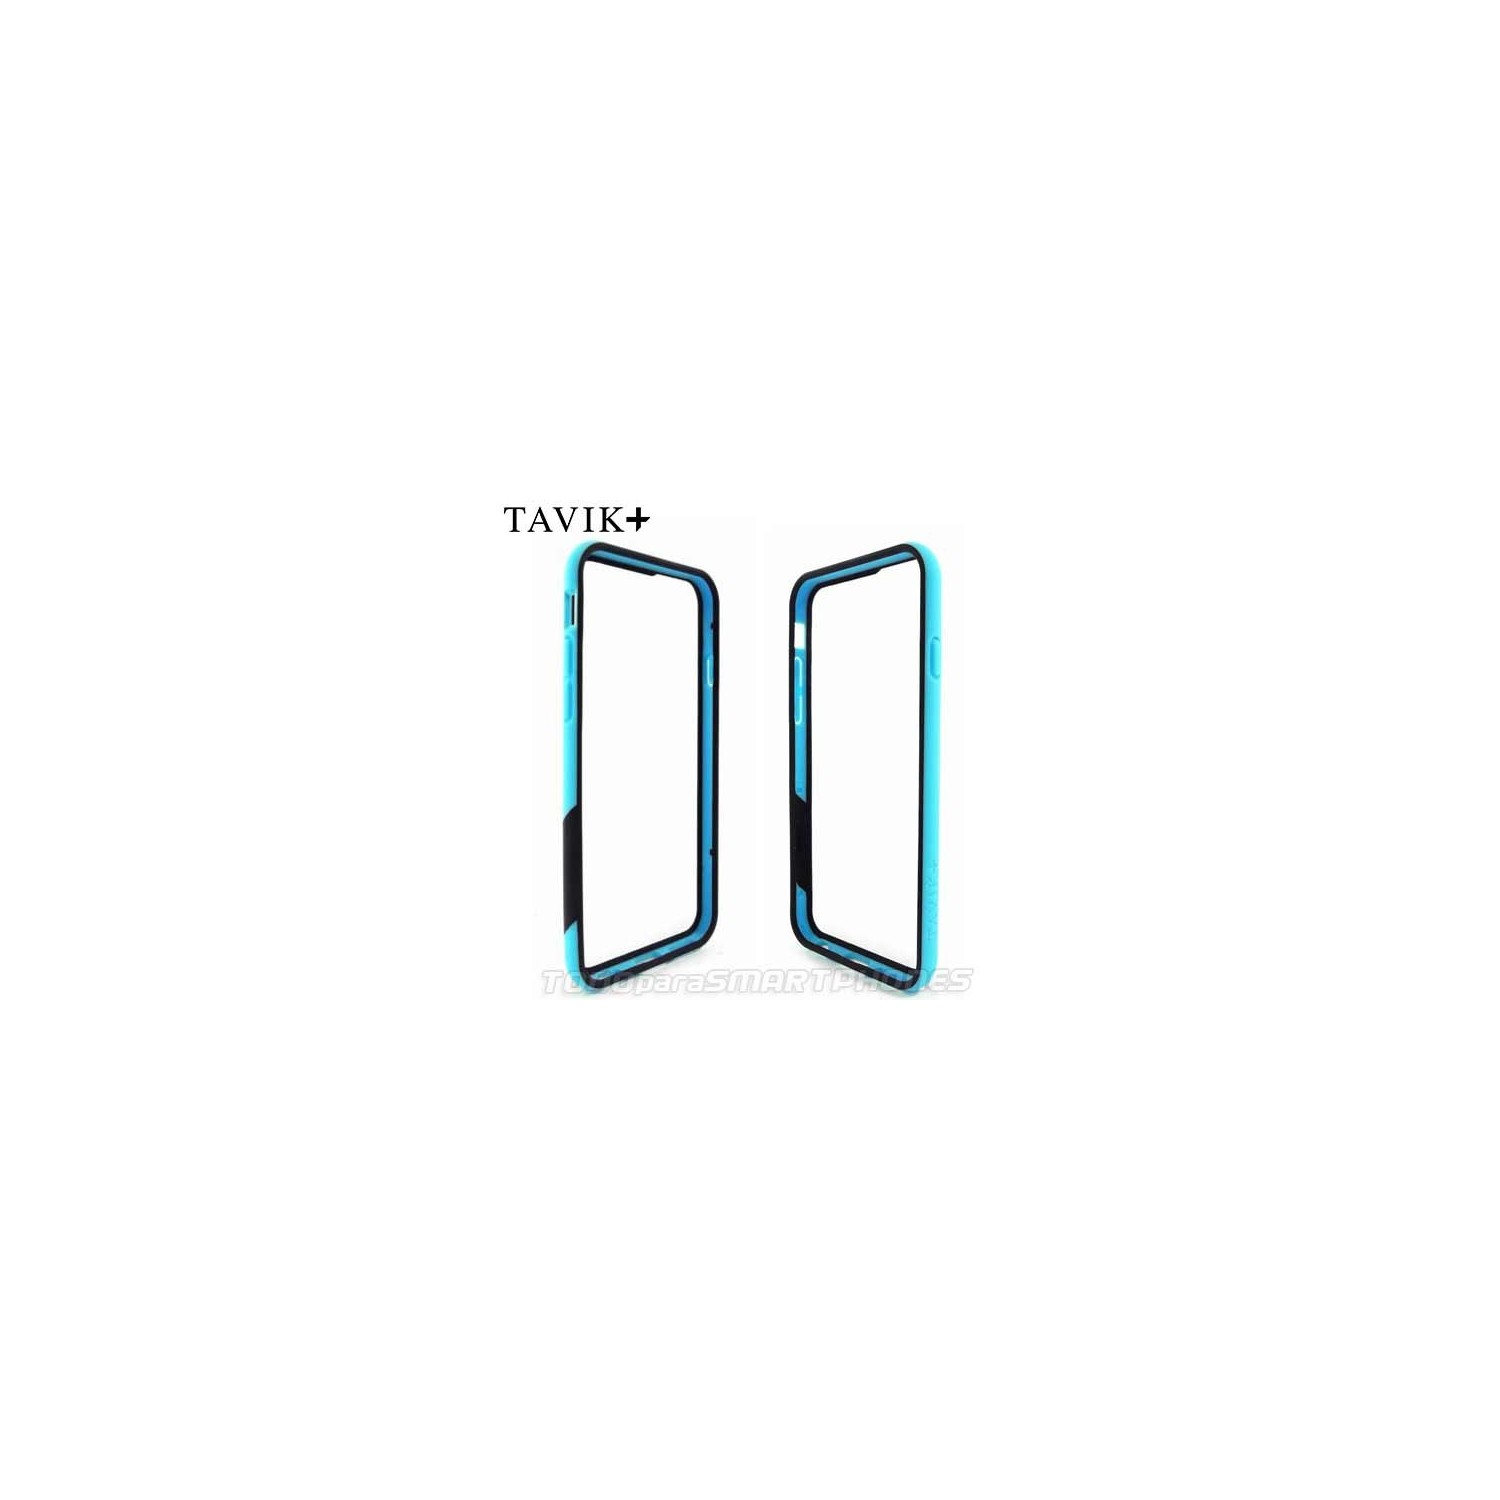 Case - TAVIK Bumper for iPhone 6/6s Blue Black